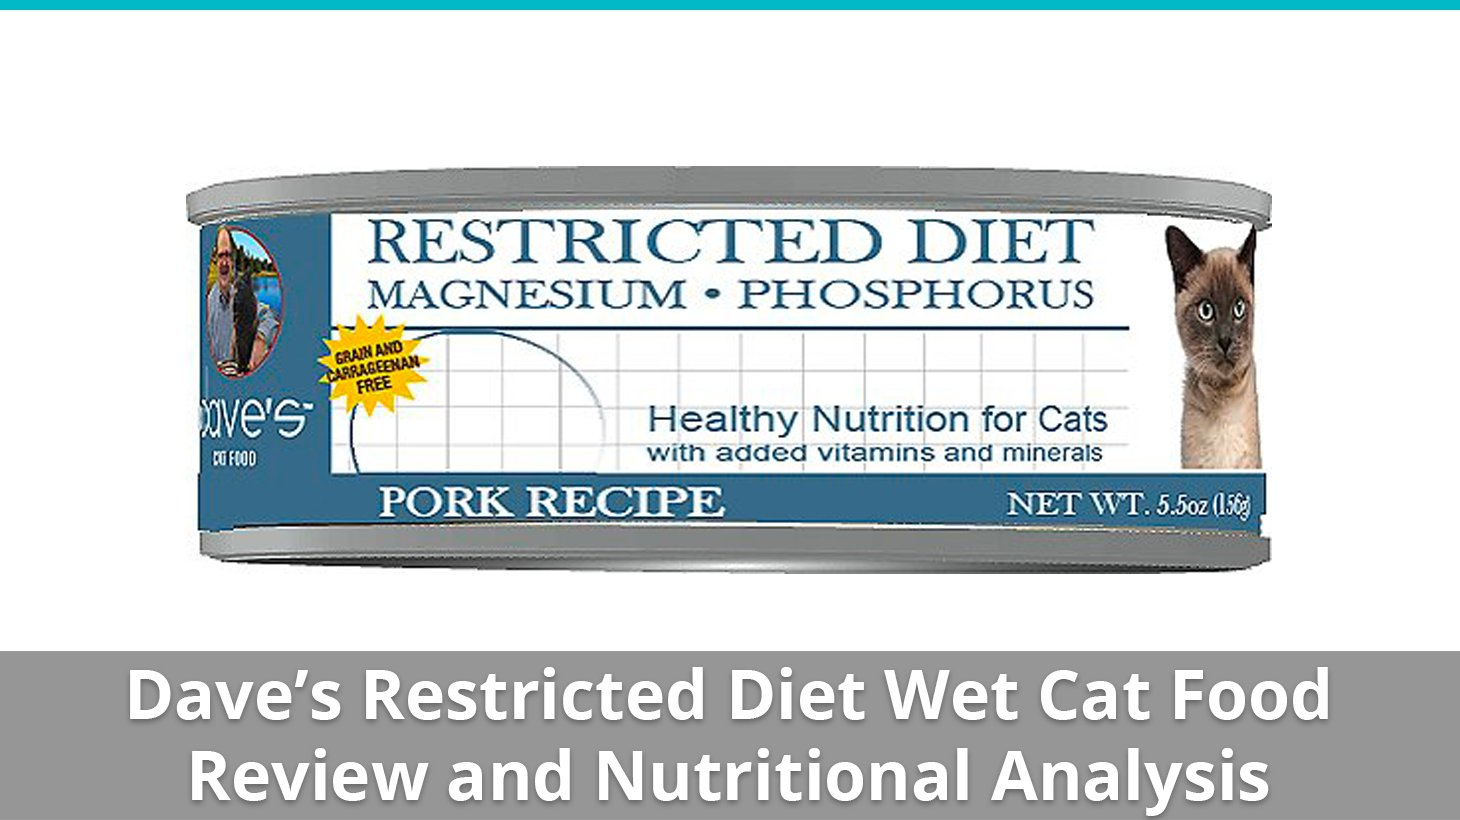 an introduction and an analysis of the product slim kitty a diet for cats Us department of health and human services study of negotiated risk agreements in assisted living: final report robert jenkensncb development corporation.